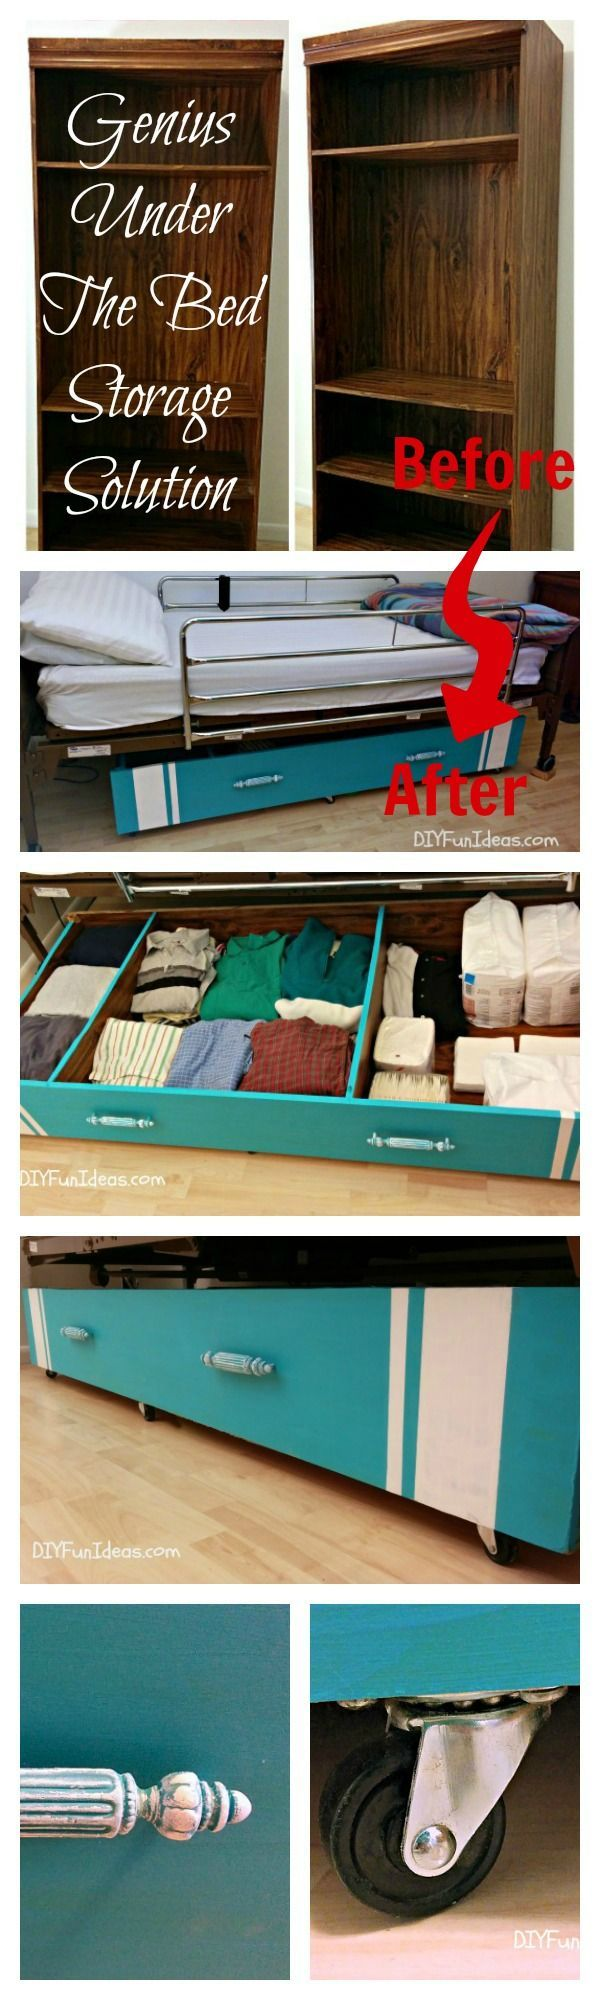 Storage Ottoman Plans Free Diy Plans Rolling Storage Ottoman So Cute And Easy